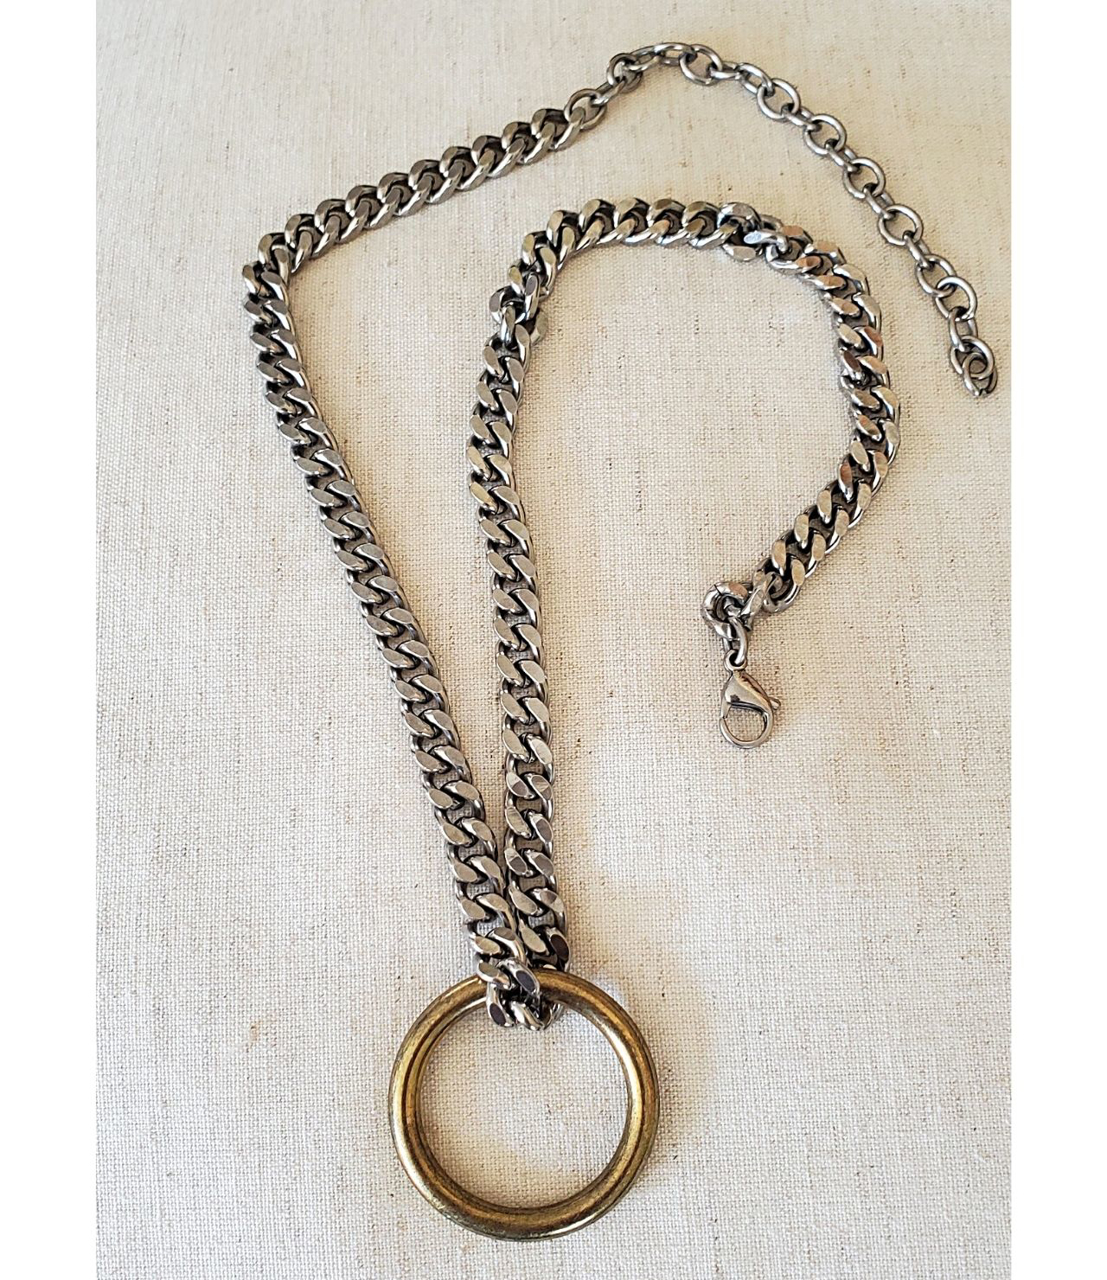 Cool brass ring thick silver curb chain necklace on white background